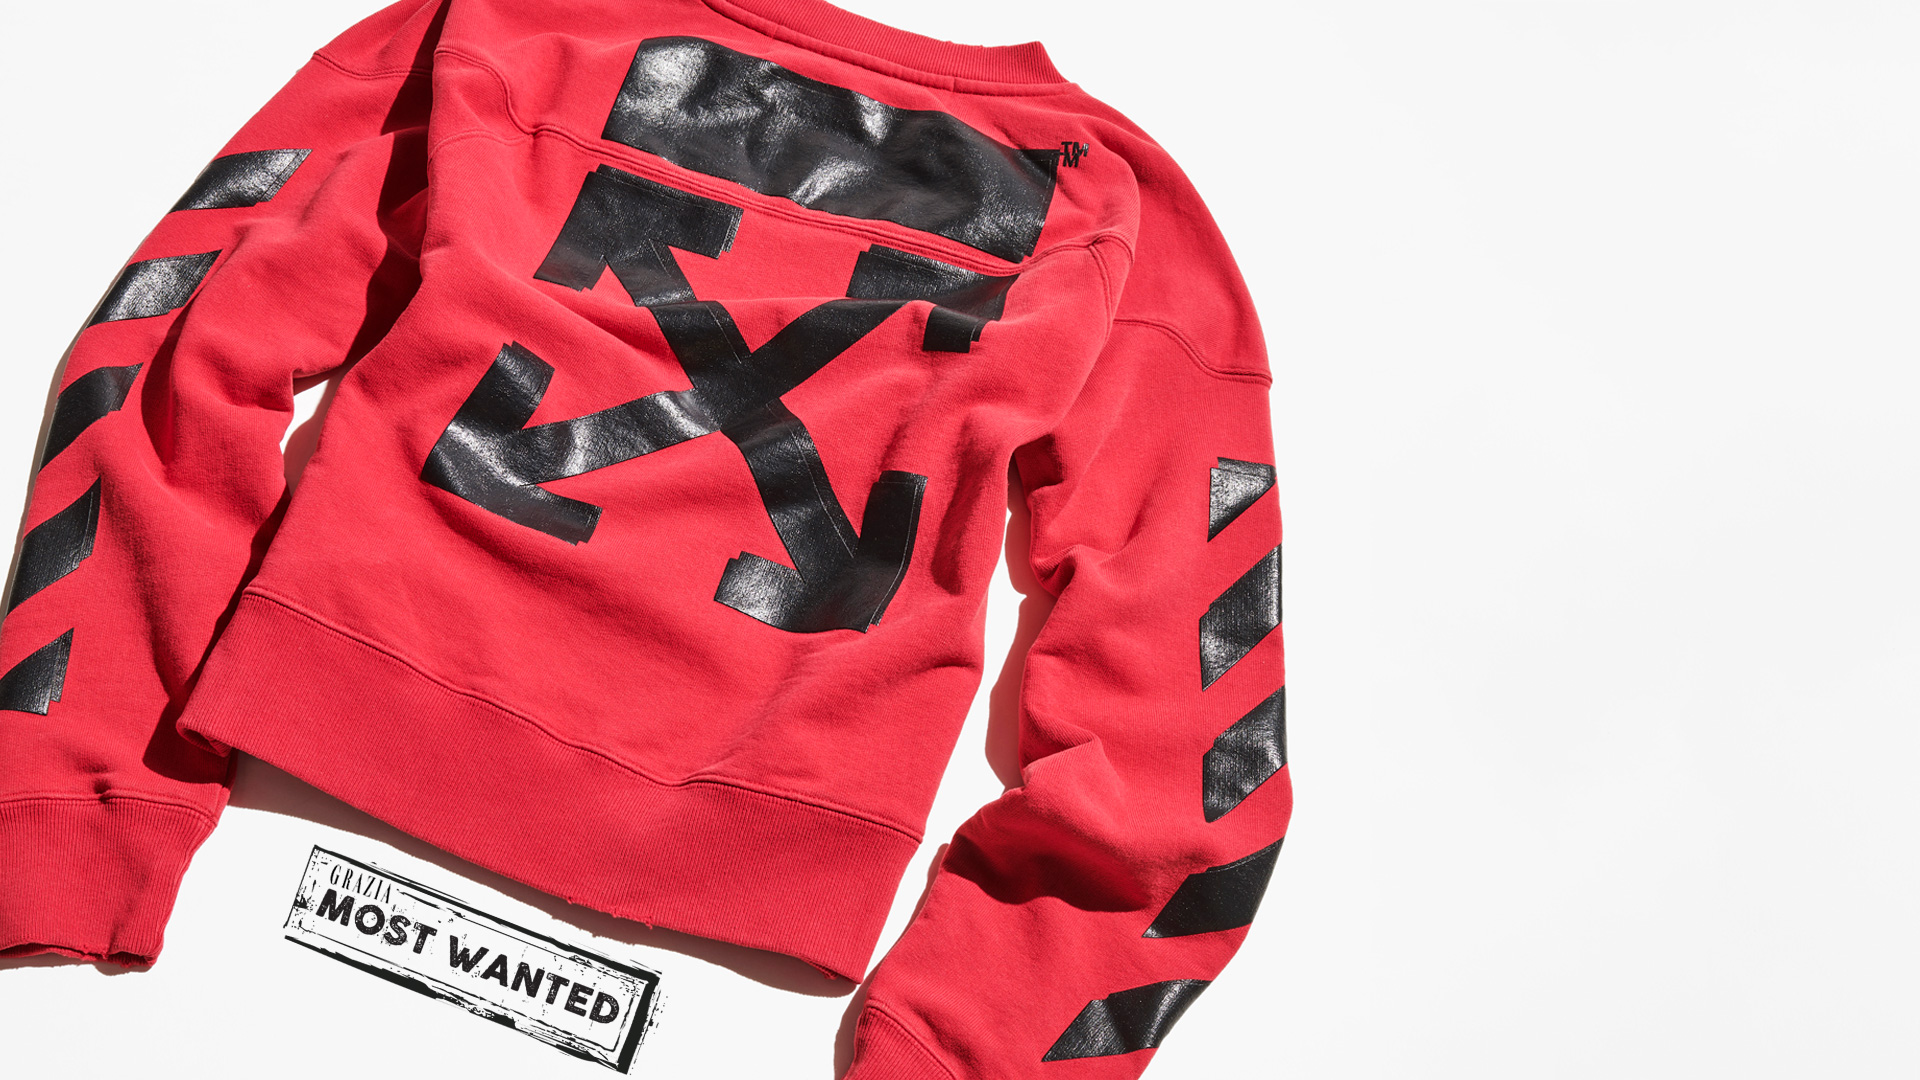 Shop Sweatshirt Off Virgil Rated X By This White Abloh Champion rq6rgYx